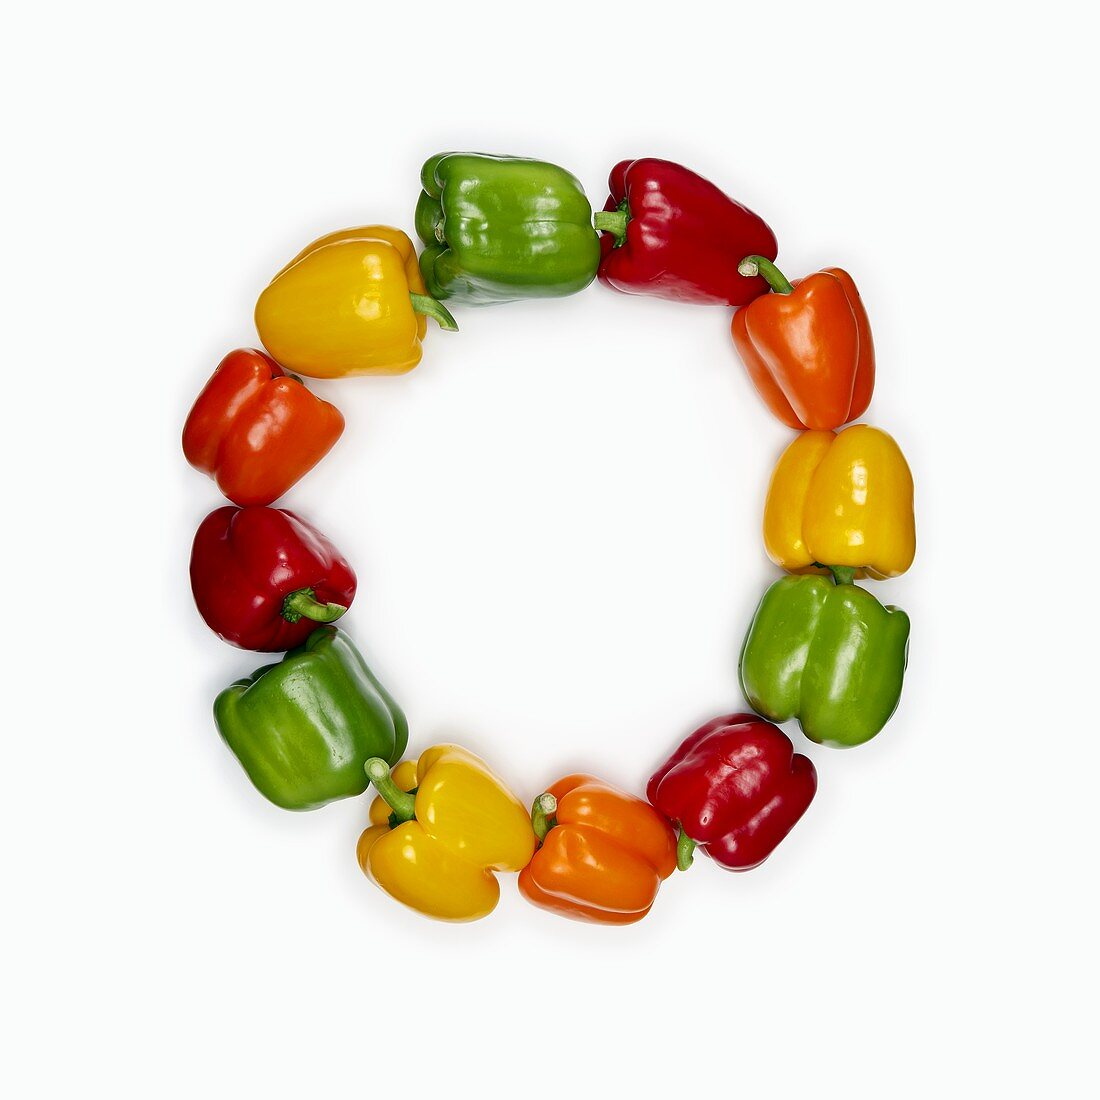 Red, yellow and green peppers, arranged in a circle